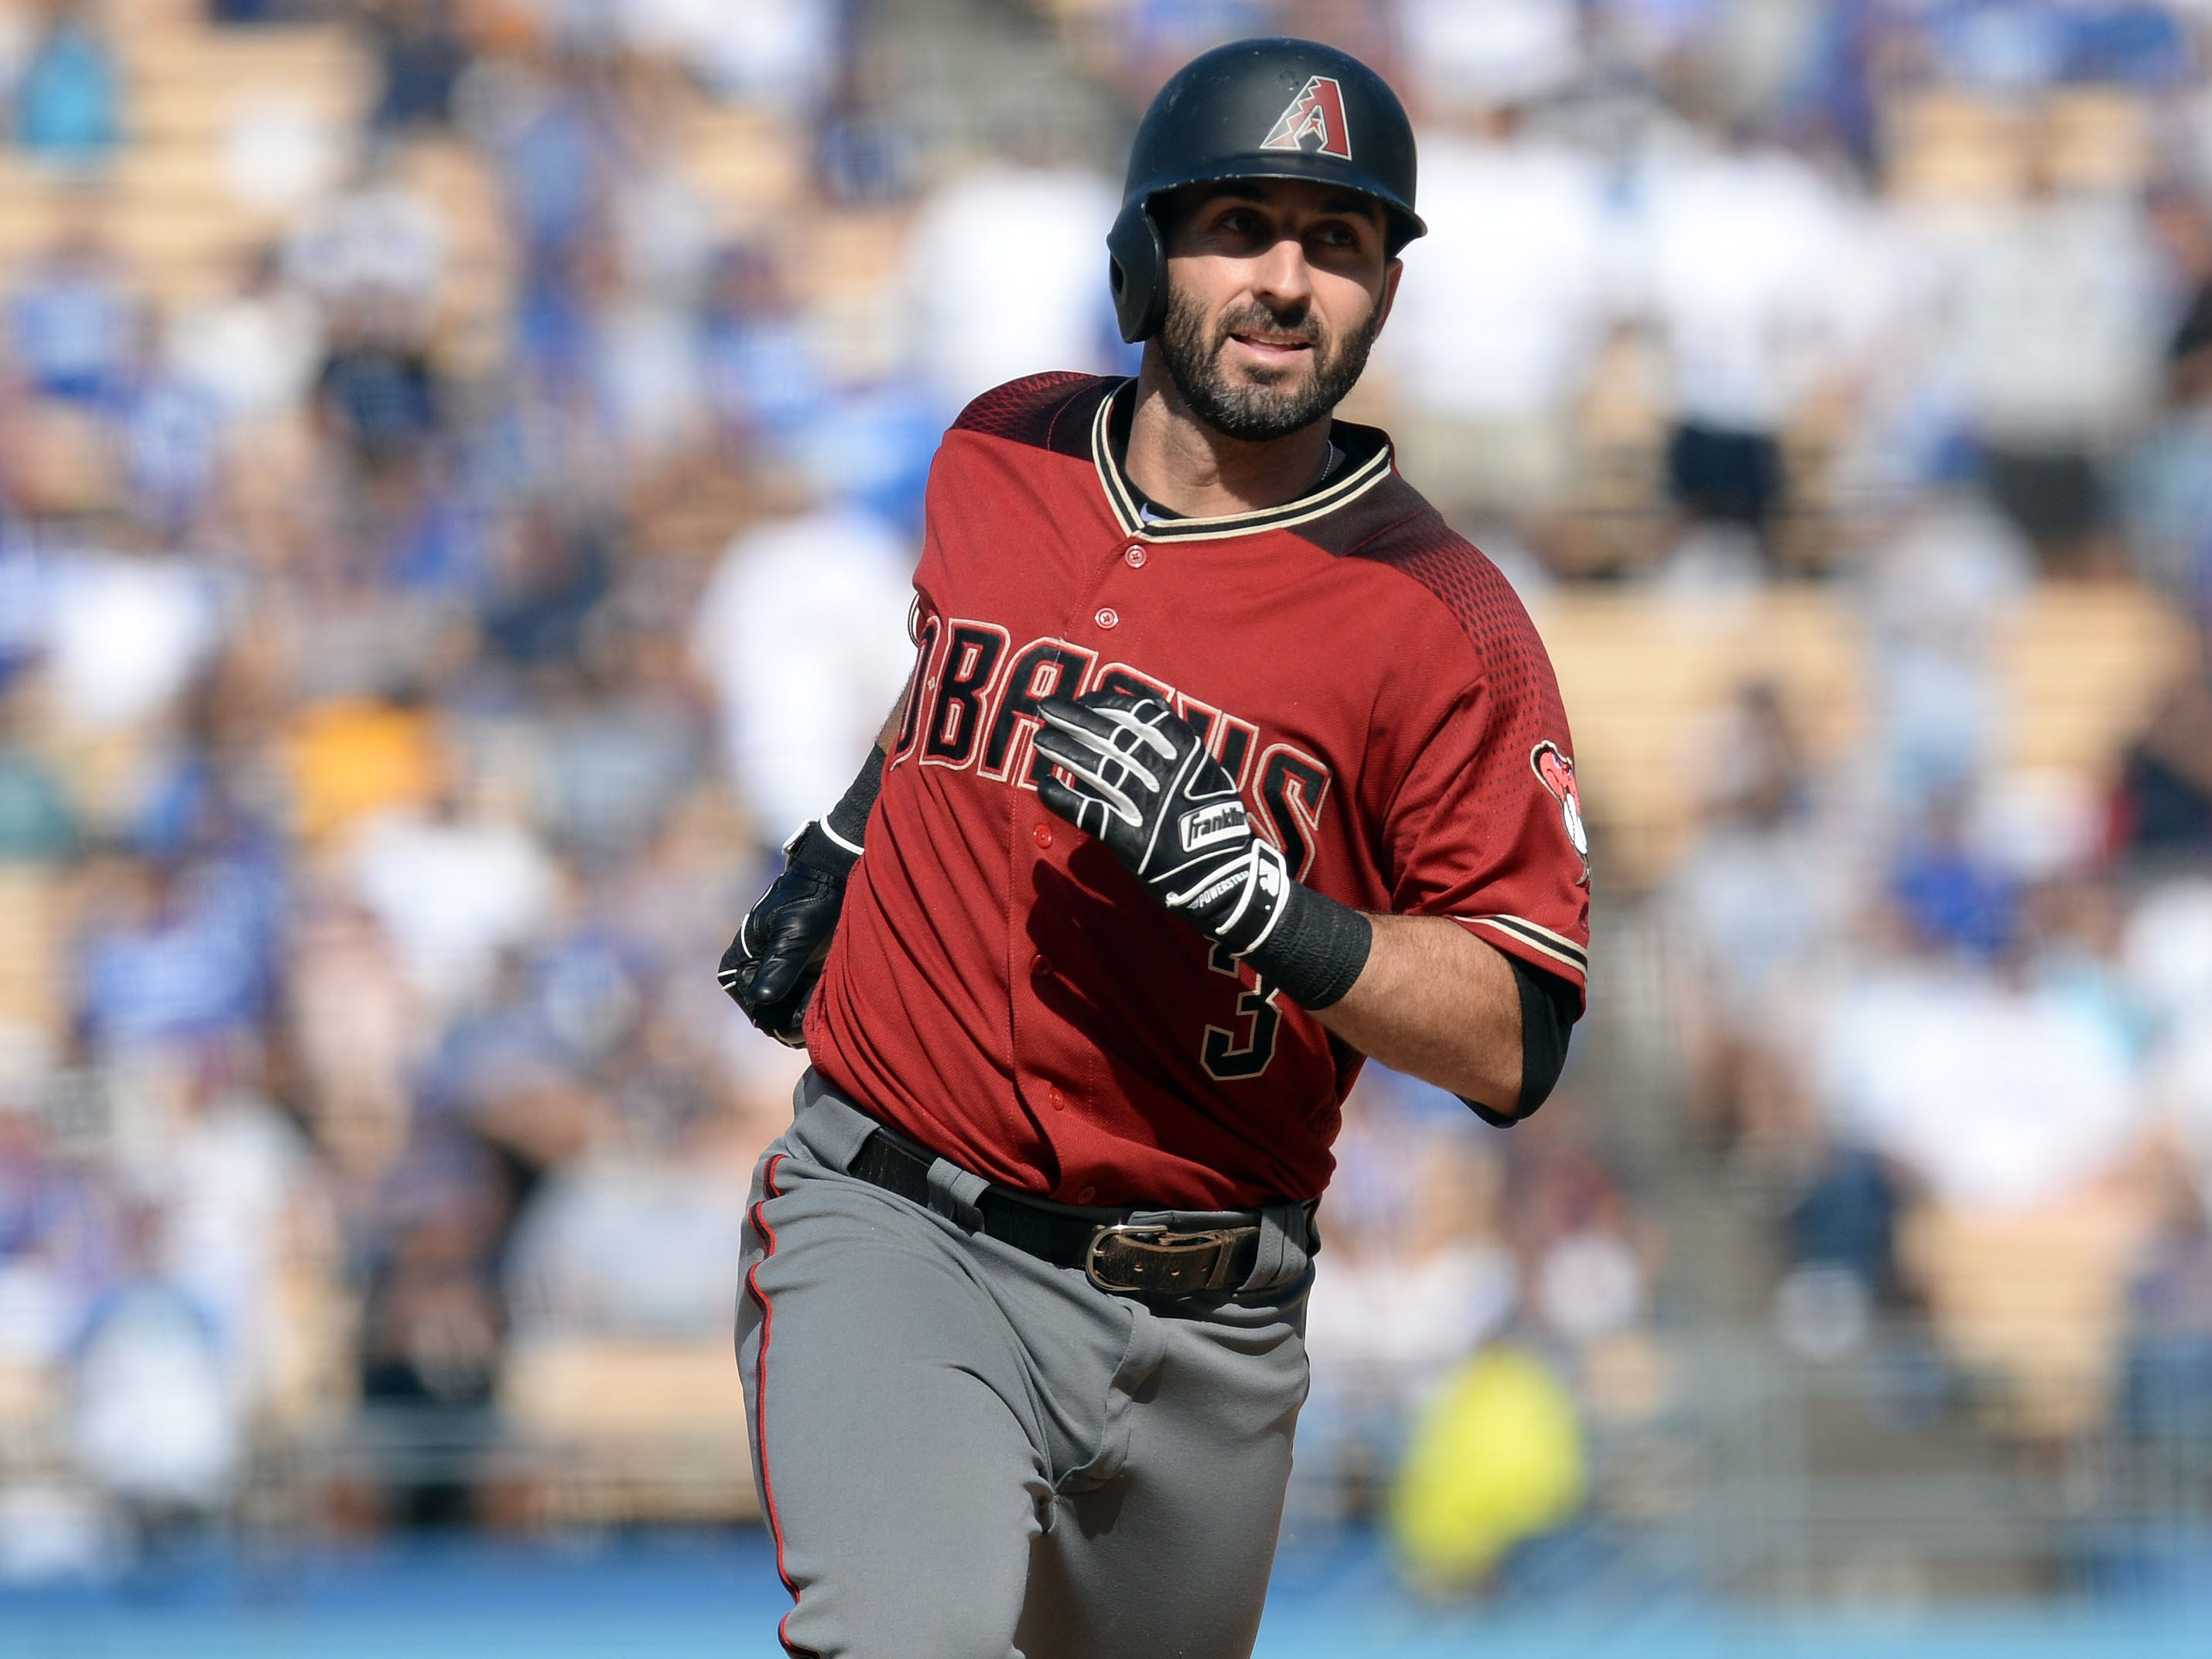 September 2, 2018; Los Angeles, CA, USA; Arizona Diamondbacks second baseman Daniel Descalso (3) rounds the bases after hitting a solo home run against the Los Angeles Dodgers in the ninth inning at Dodger Stadium. Mandatory Credit: Gary A. Vasquez-USA TODAY Sports